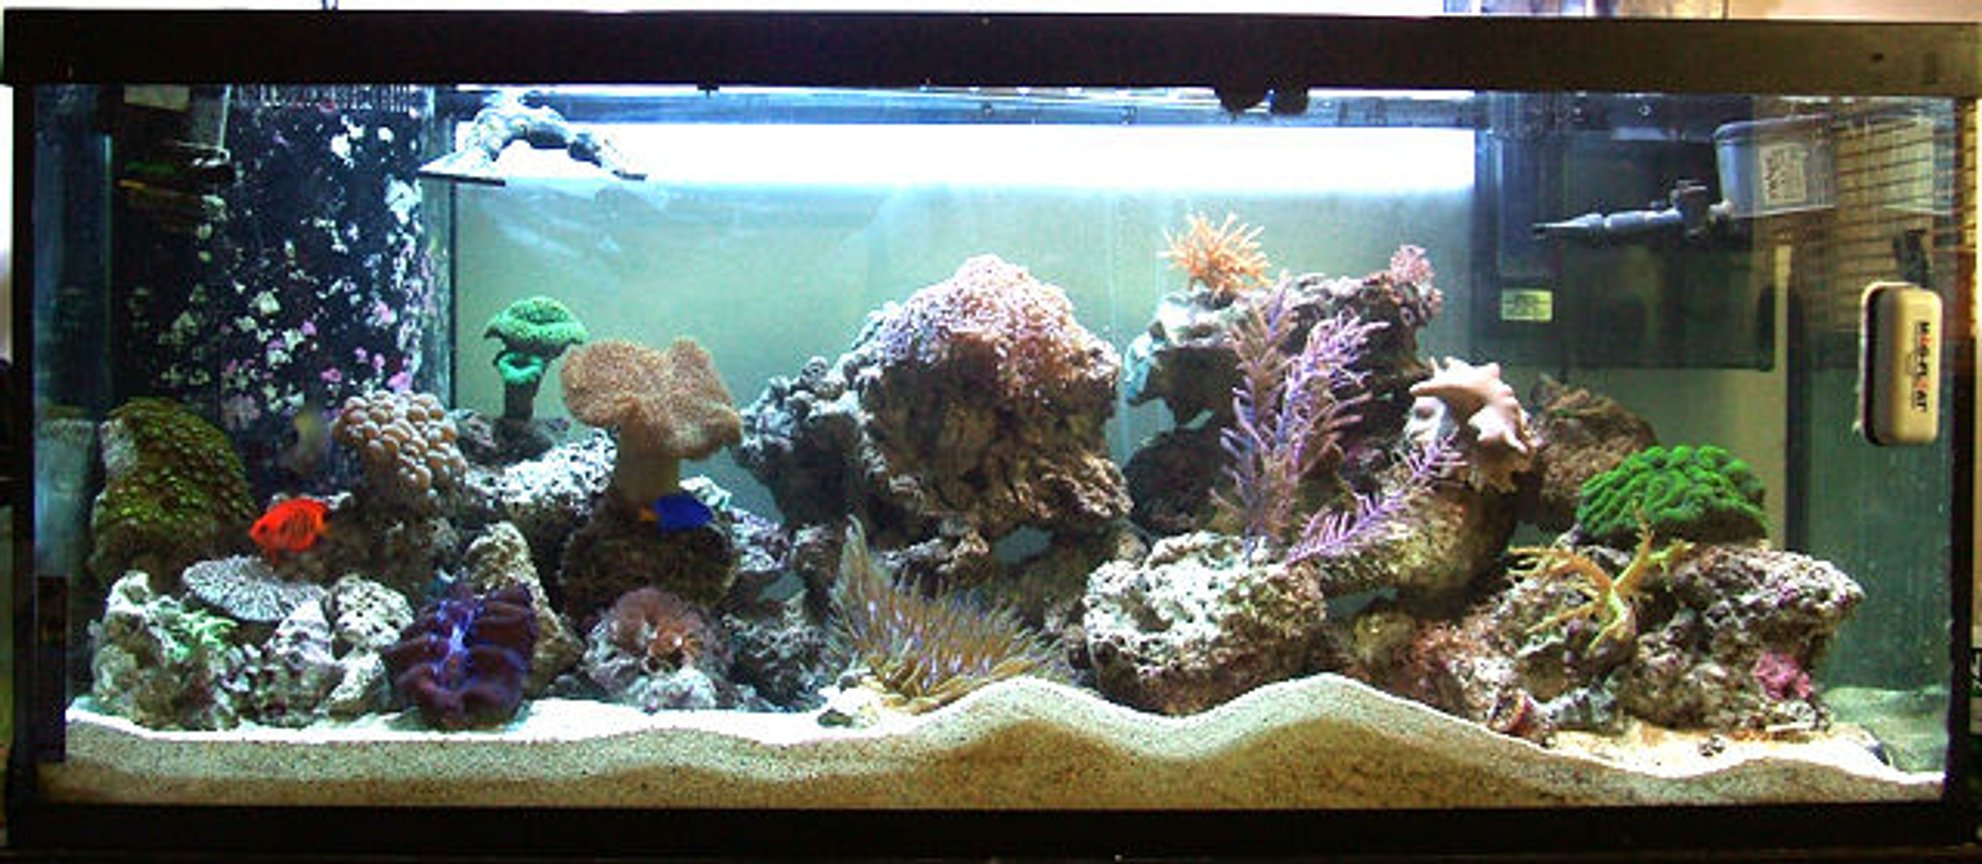 75 gallons reef tank (mostly live coral and fish) - Overall aquarium photo